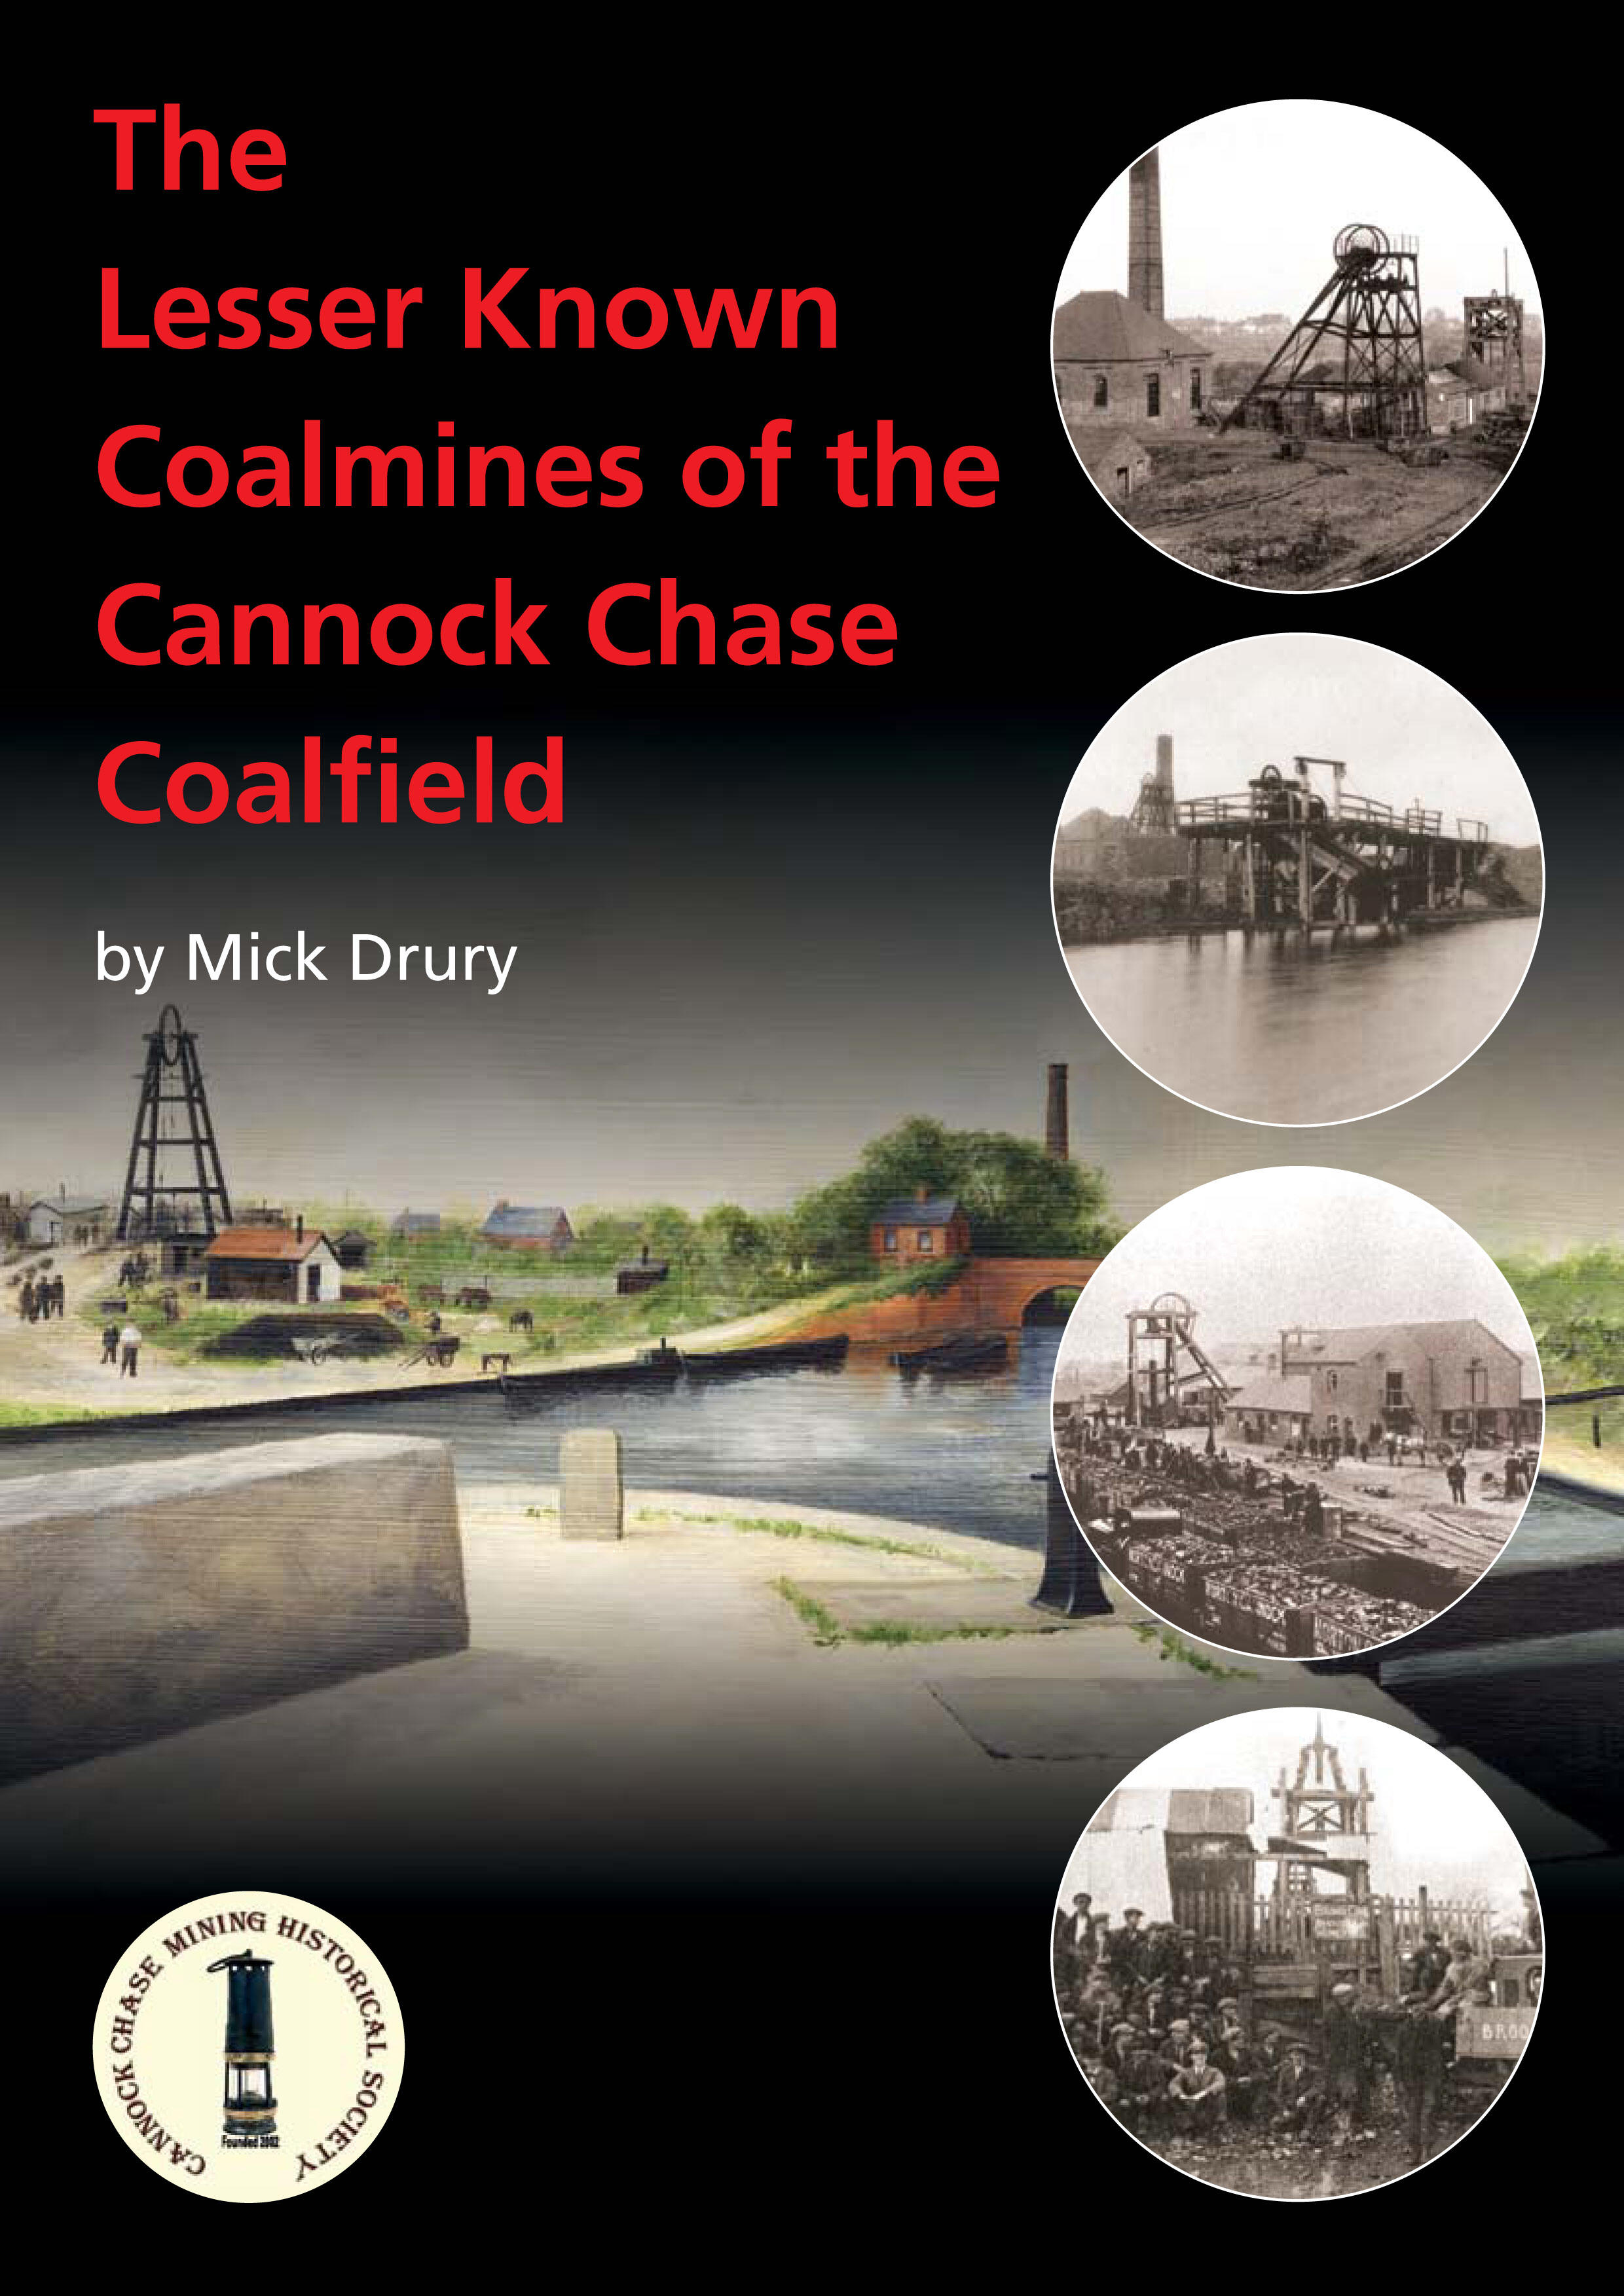 The Lesser Known Mines of the Cannock Chase Coalfield